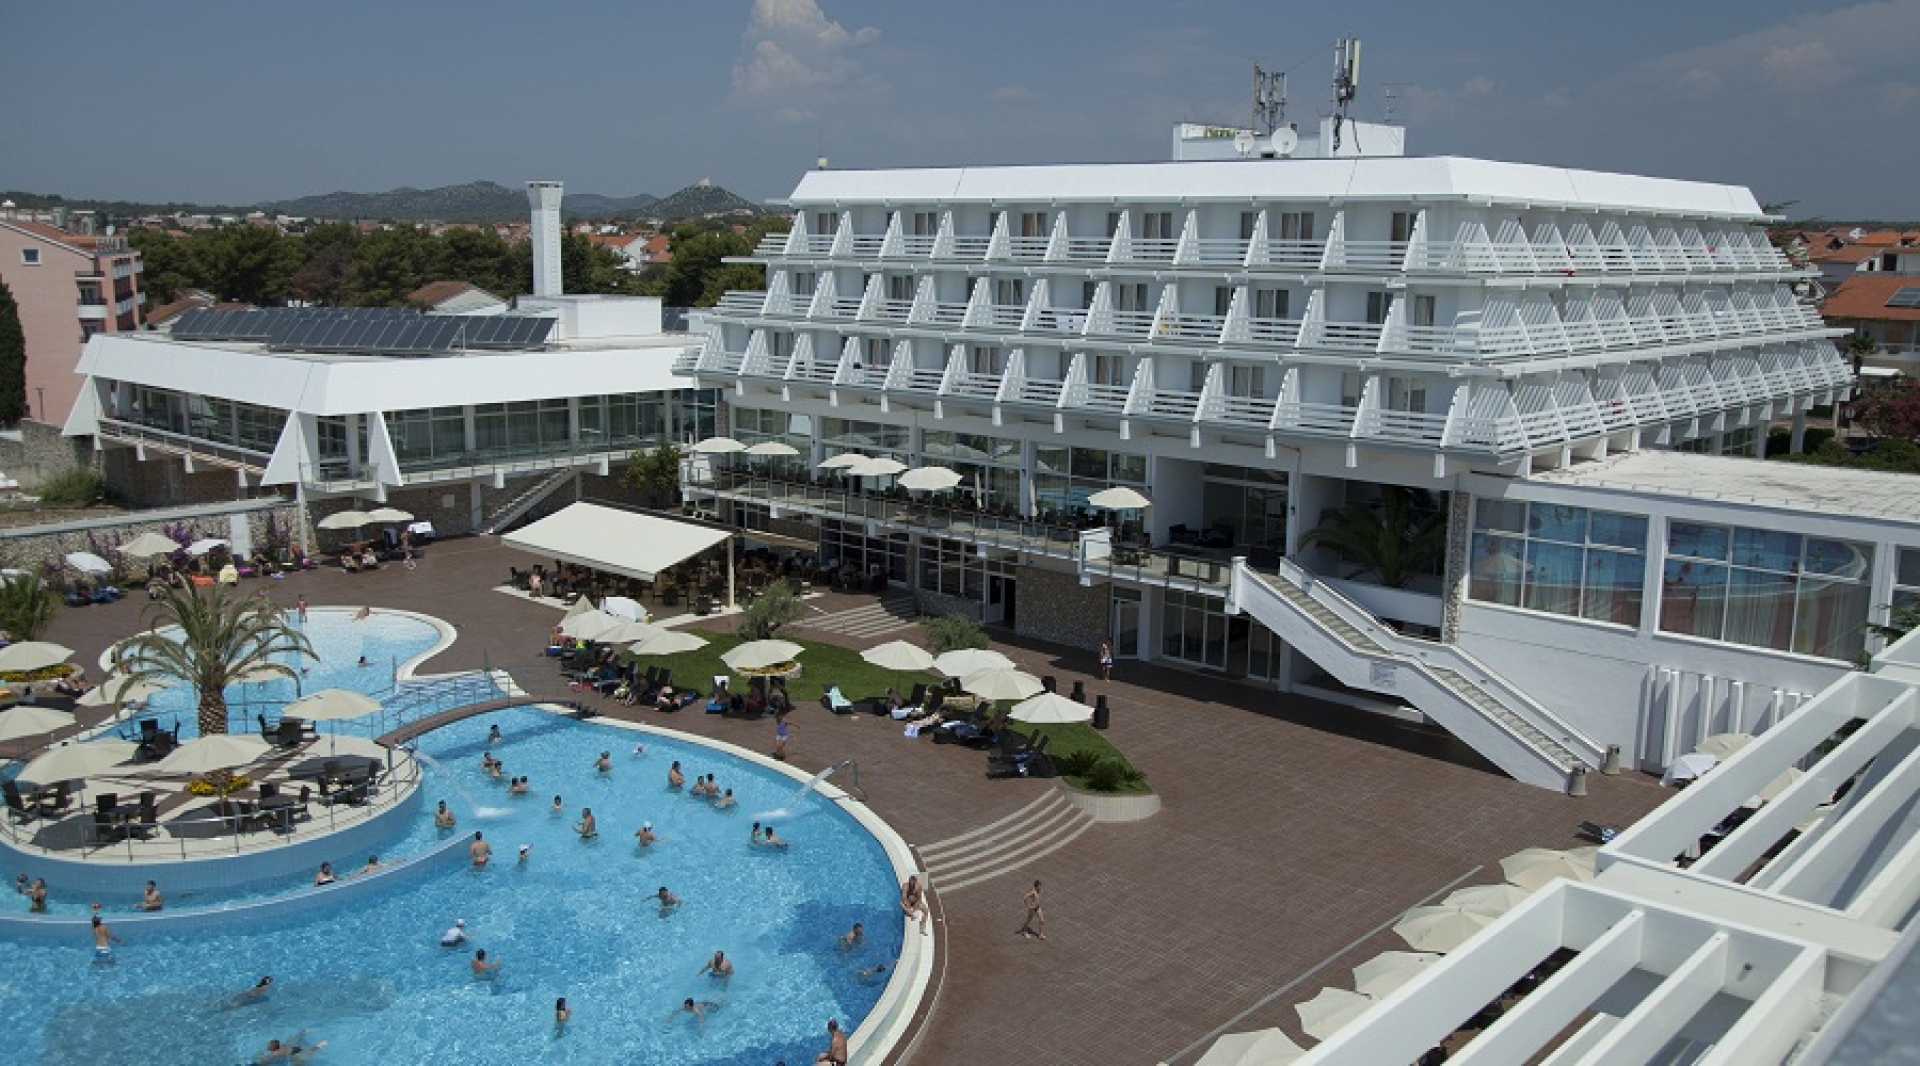 Ovi Travel  Charter Croația  Split Hotel Olympia 4. The Lygon Arms Hotel - Puma Hotels' Collection. Marbella Playa Hotel. JAL Private Resort Okuma. Fiesta Americana Reforma Hotel. Marine Court Hotel. Janfusun Prince Hotel. Eburon Hotel. The Terrace Hotel